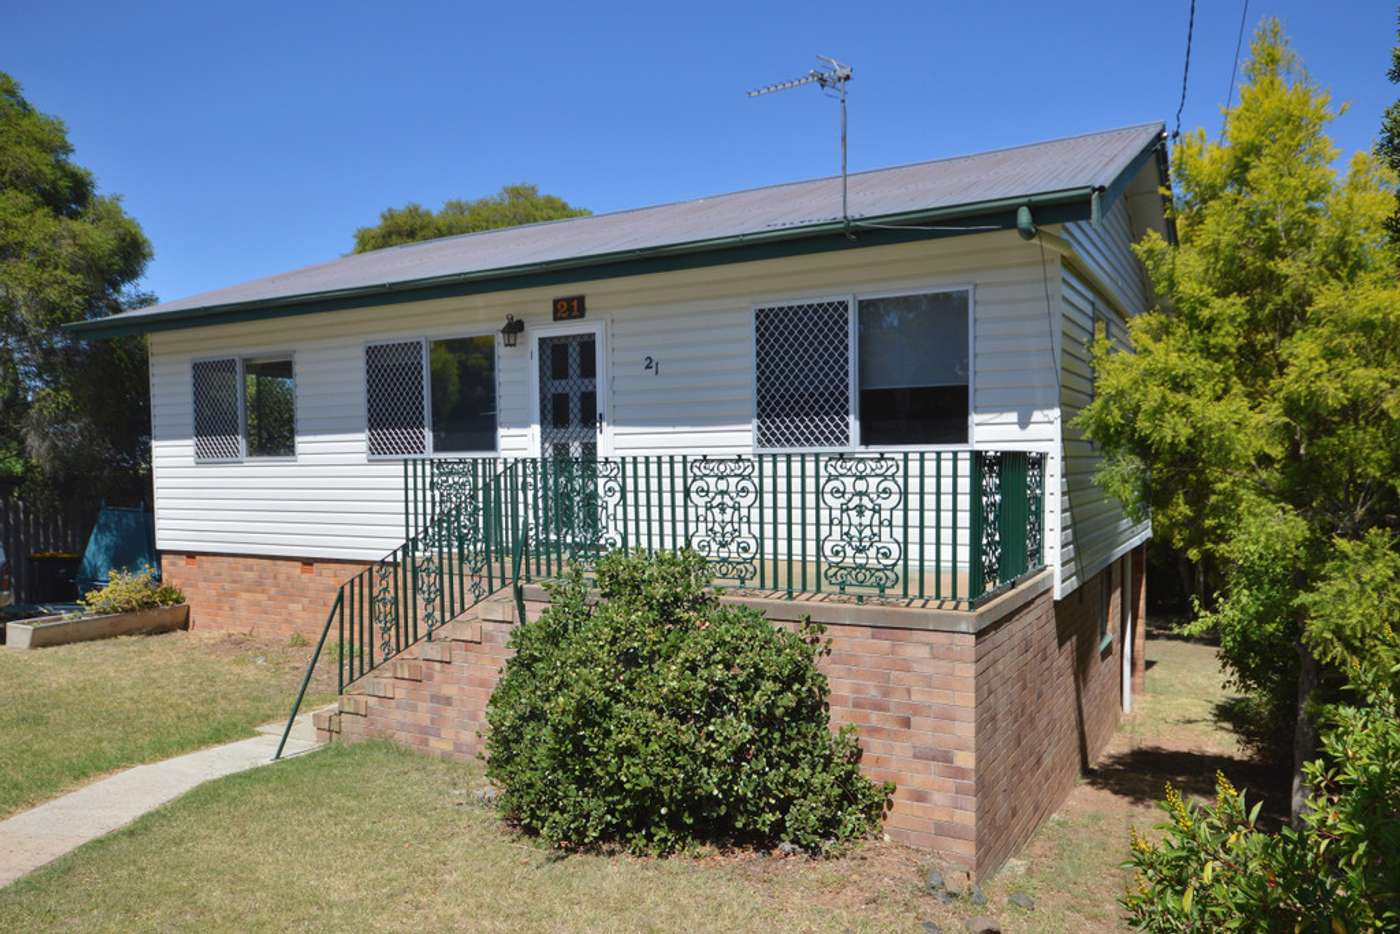 Main view of Homely house listing, 21 Gillam Street, Warwick QLD 4370